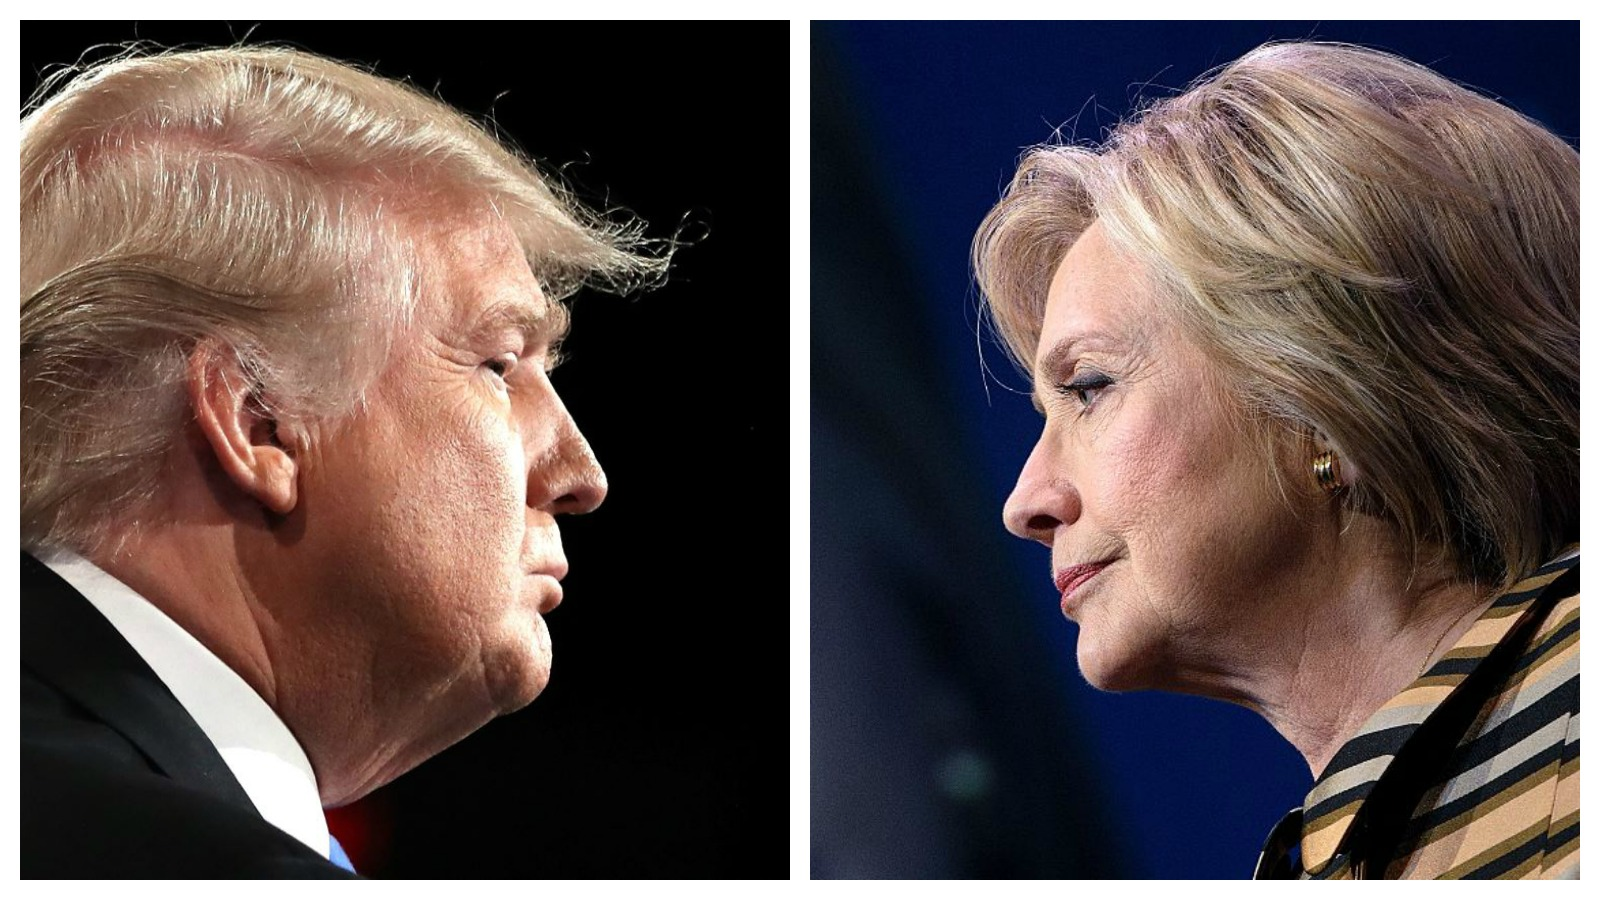 clinton vs trump what you need to know about tonight 39 s debate ktvb com. Black Bedroom Furniture Sets. Home Design Ideas